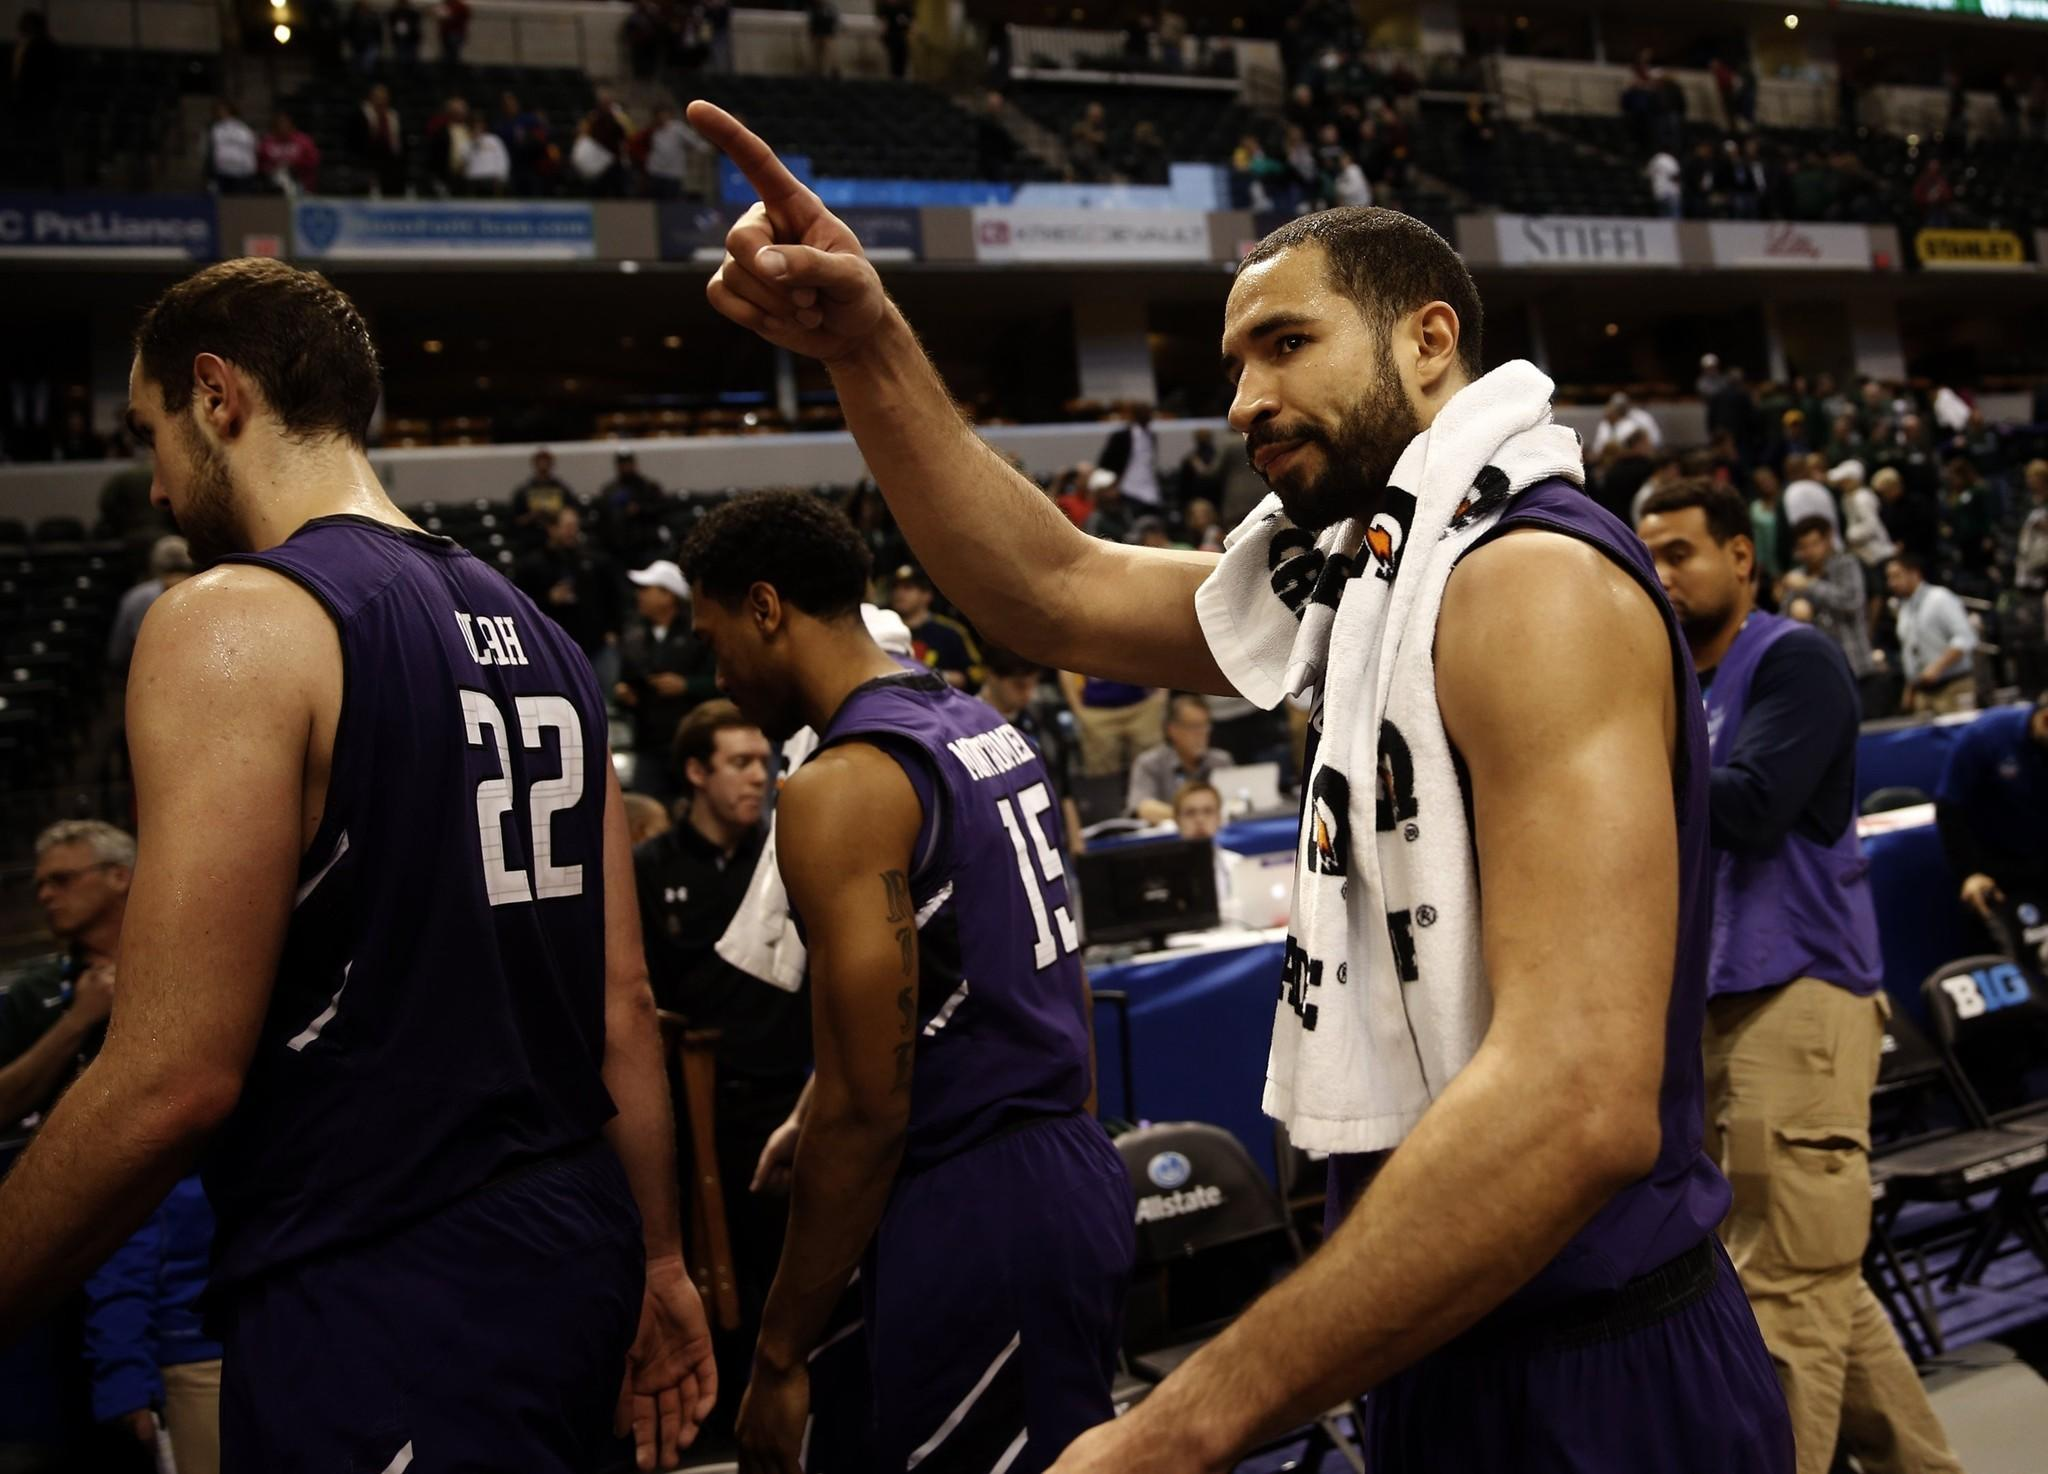 Northwestern's Drew Crawford leaves the court after the Wildcats' loss to Michigan State, 67-51, in the Big Ten tournament quarterfinals on March 14.